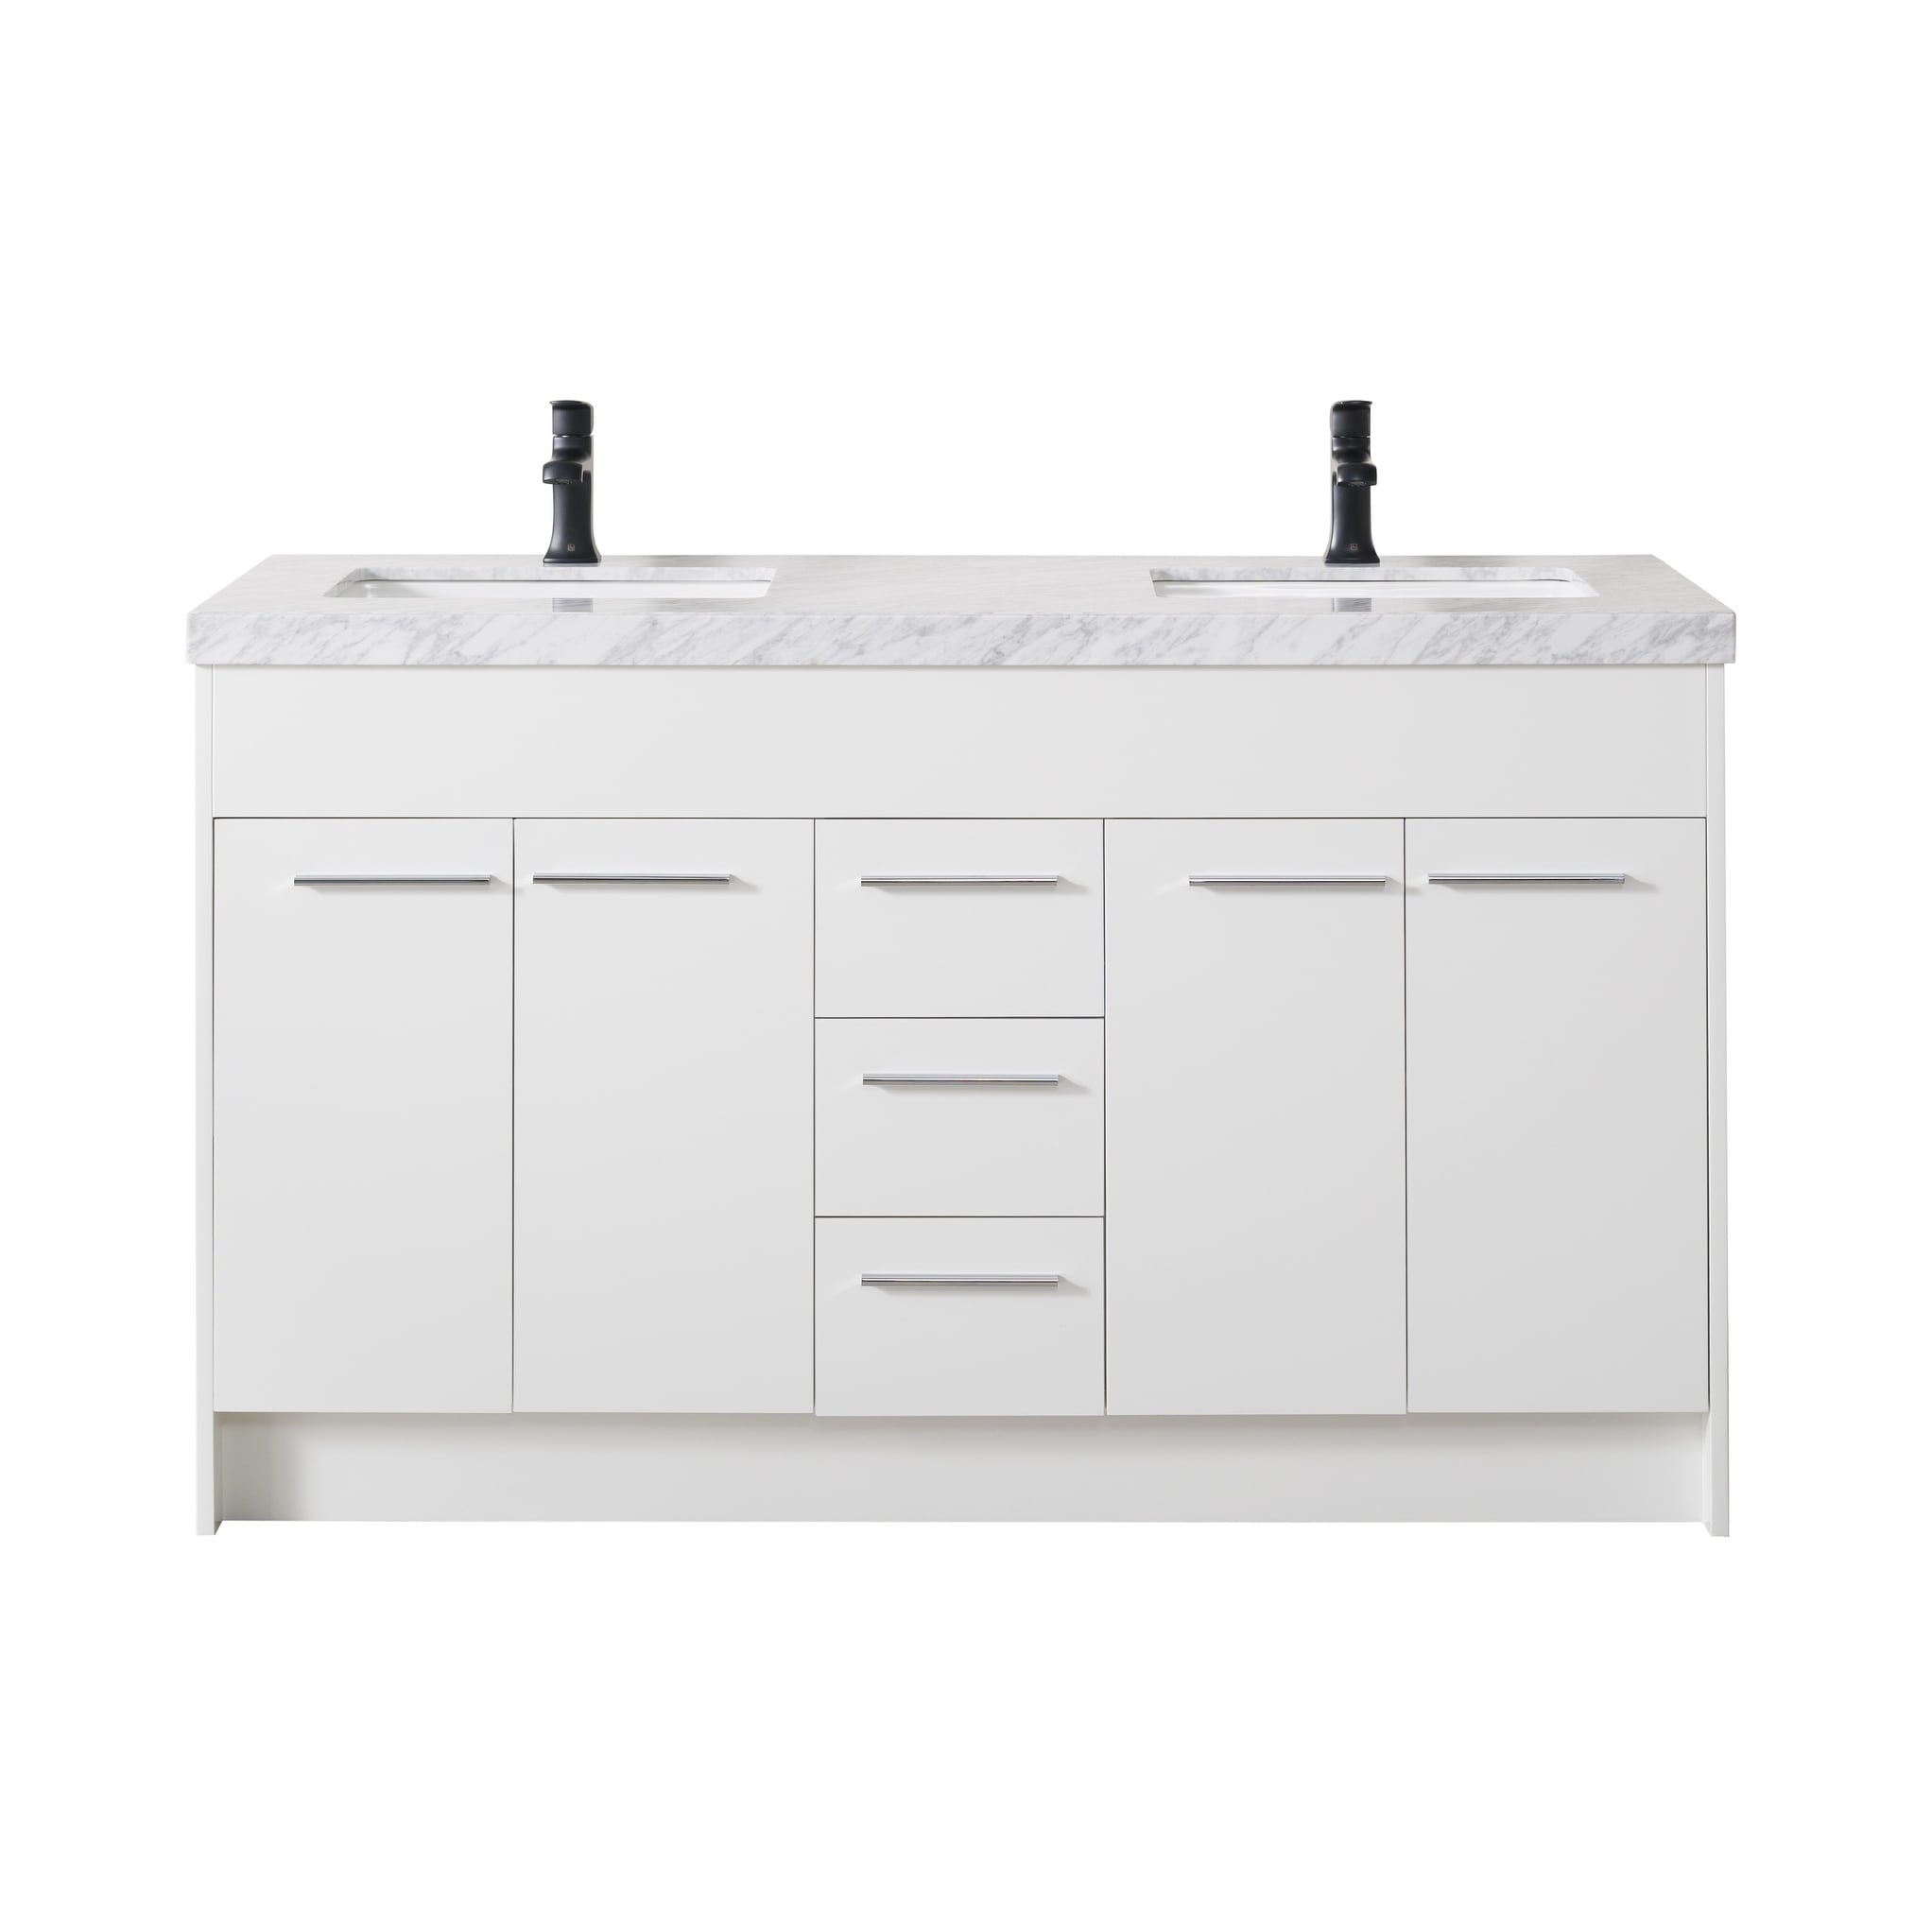 Stufurhome Lotus White Wood Finish Double Sink Bathroom Vanity with Drains and Matte Black Faucets